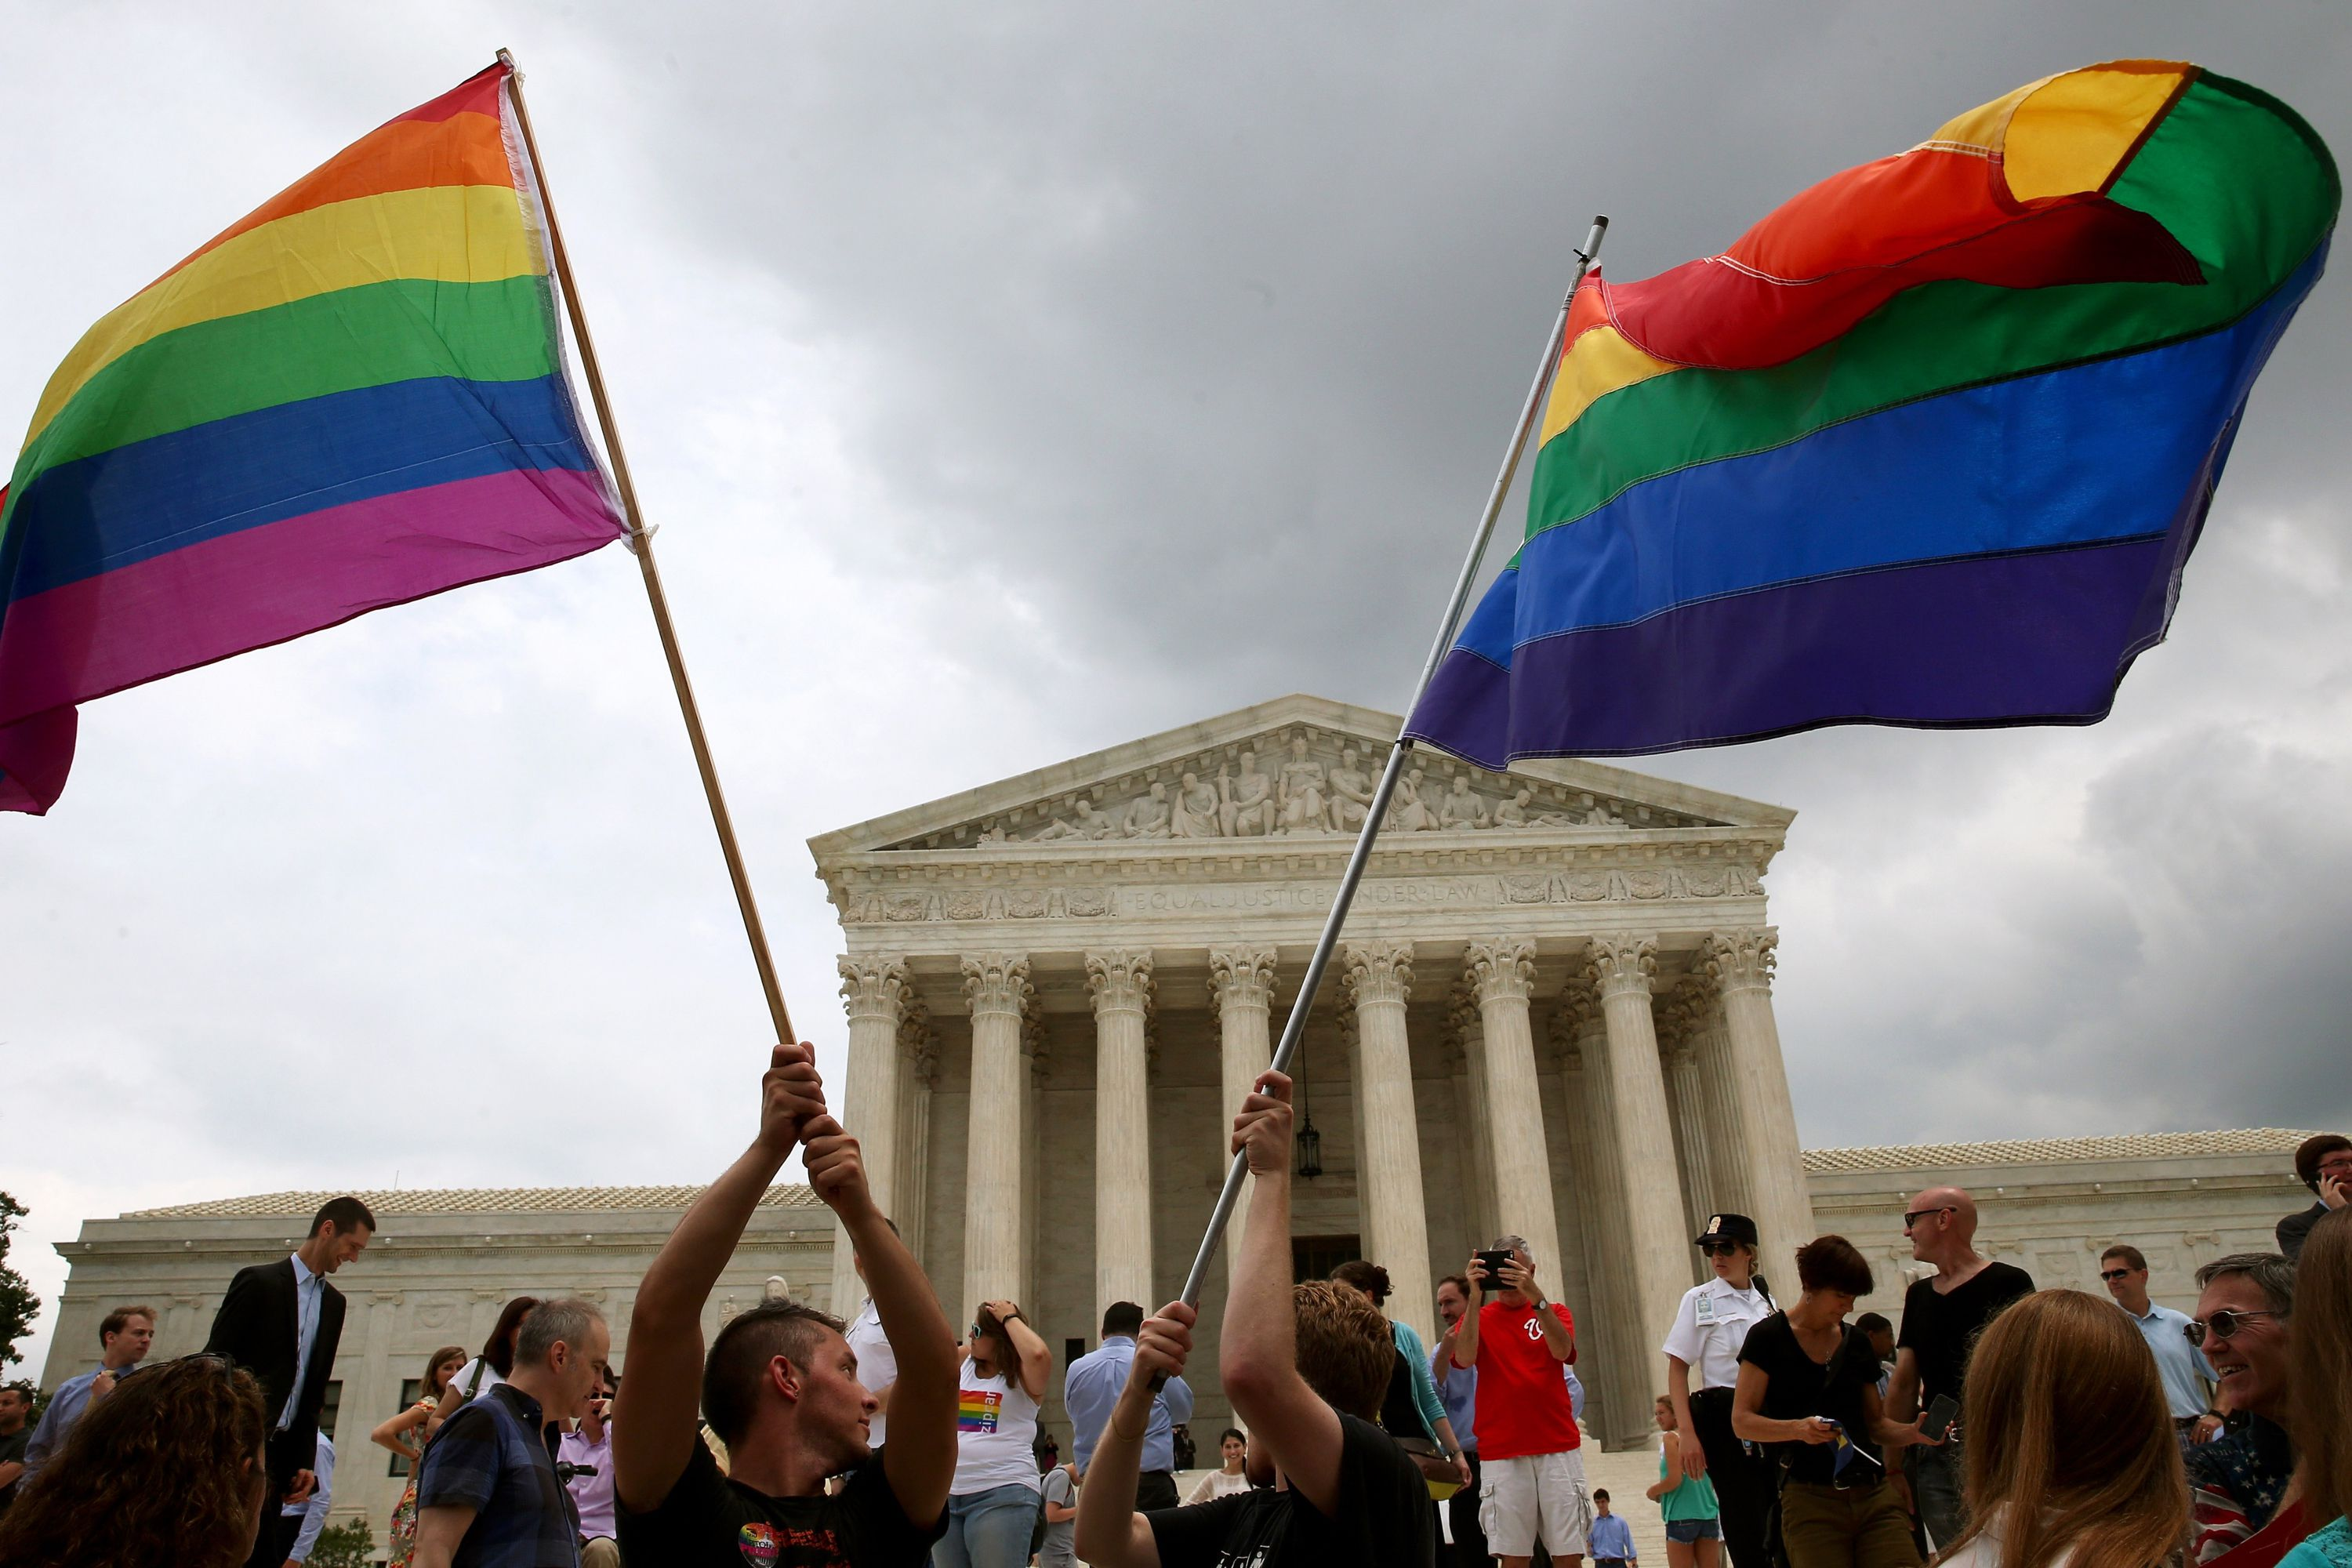 gay marriage and its legalization In a landmark opinion, a divided supreme court on friday ruled that same-sex couples can marry nationwide, establishing a new civil right and handing gay rights advocates a historic victory.